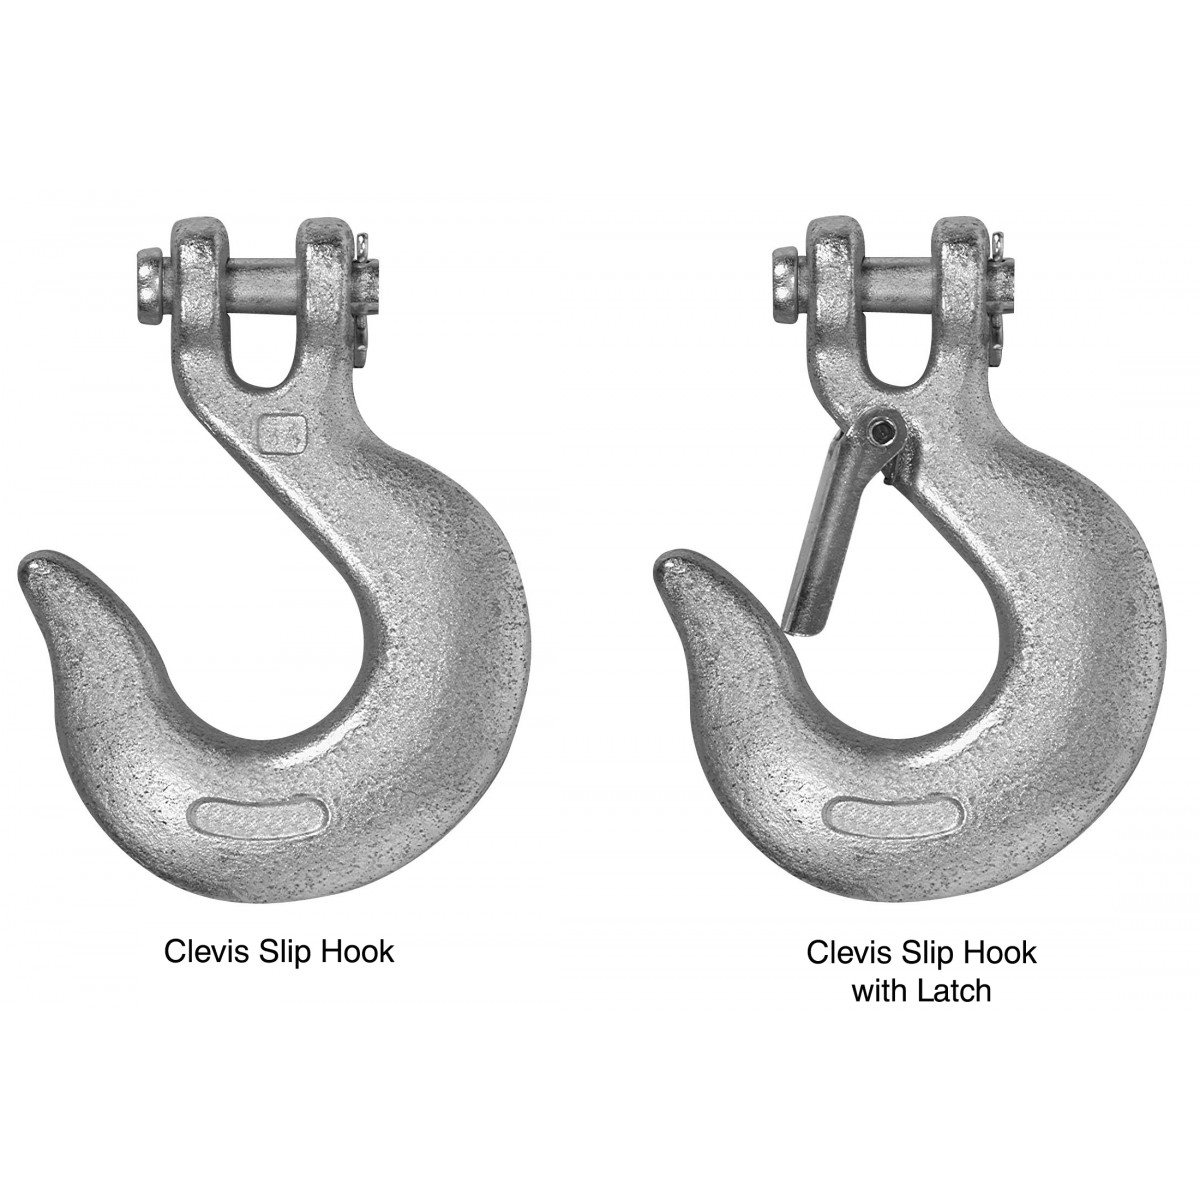 Picture of Campbell T9700624 Clevis Slip Hook with Latch, 3/8 in Trade, 5400 lb Working Load, 43 Grade, Steel, Zinc